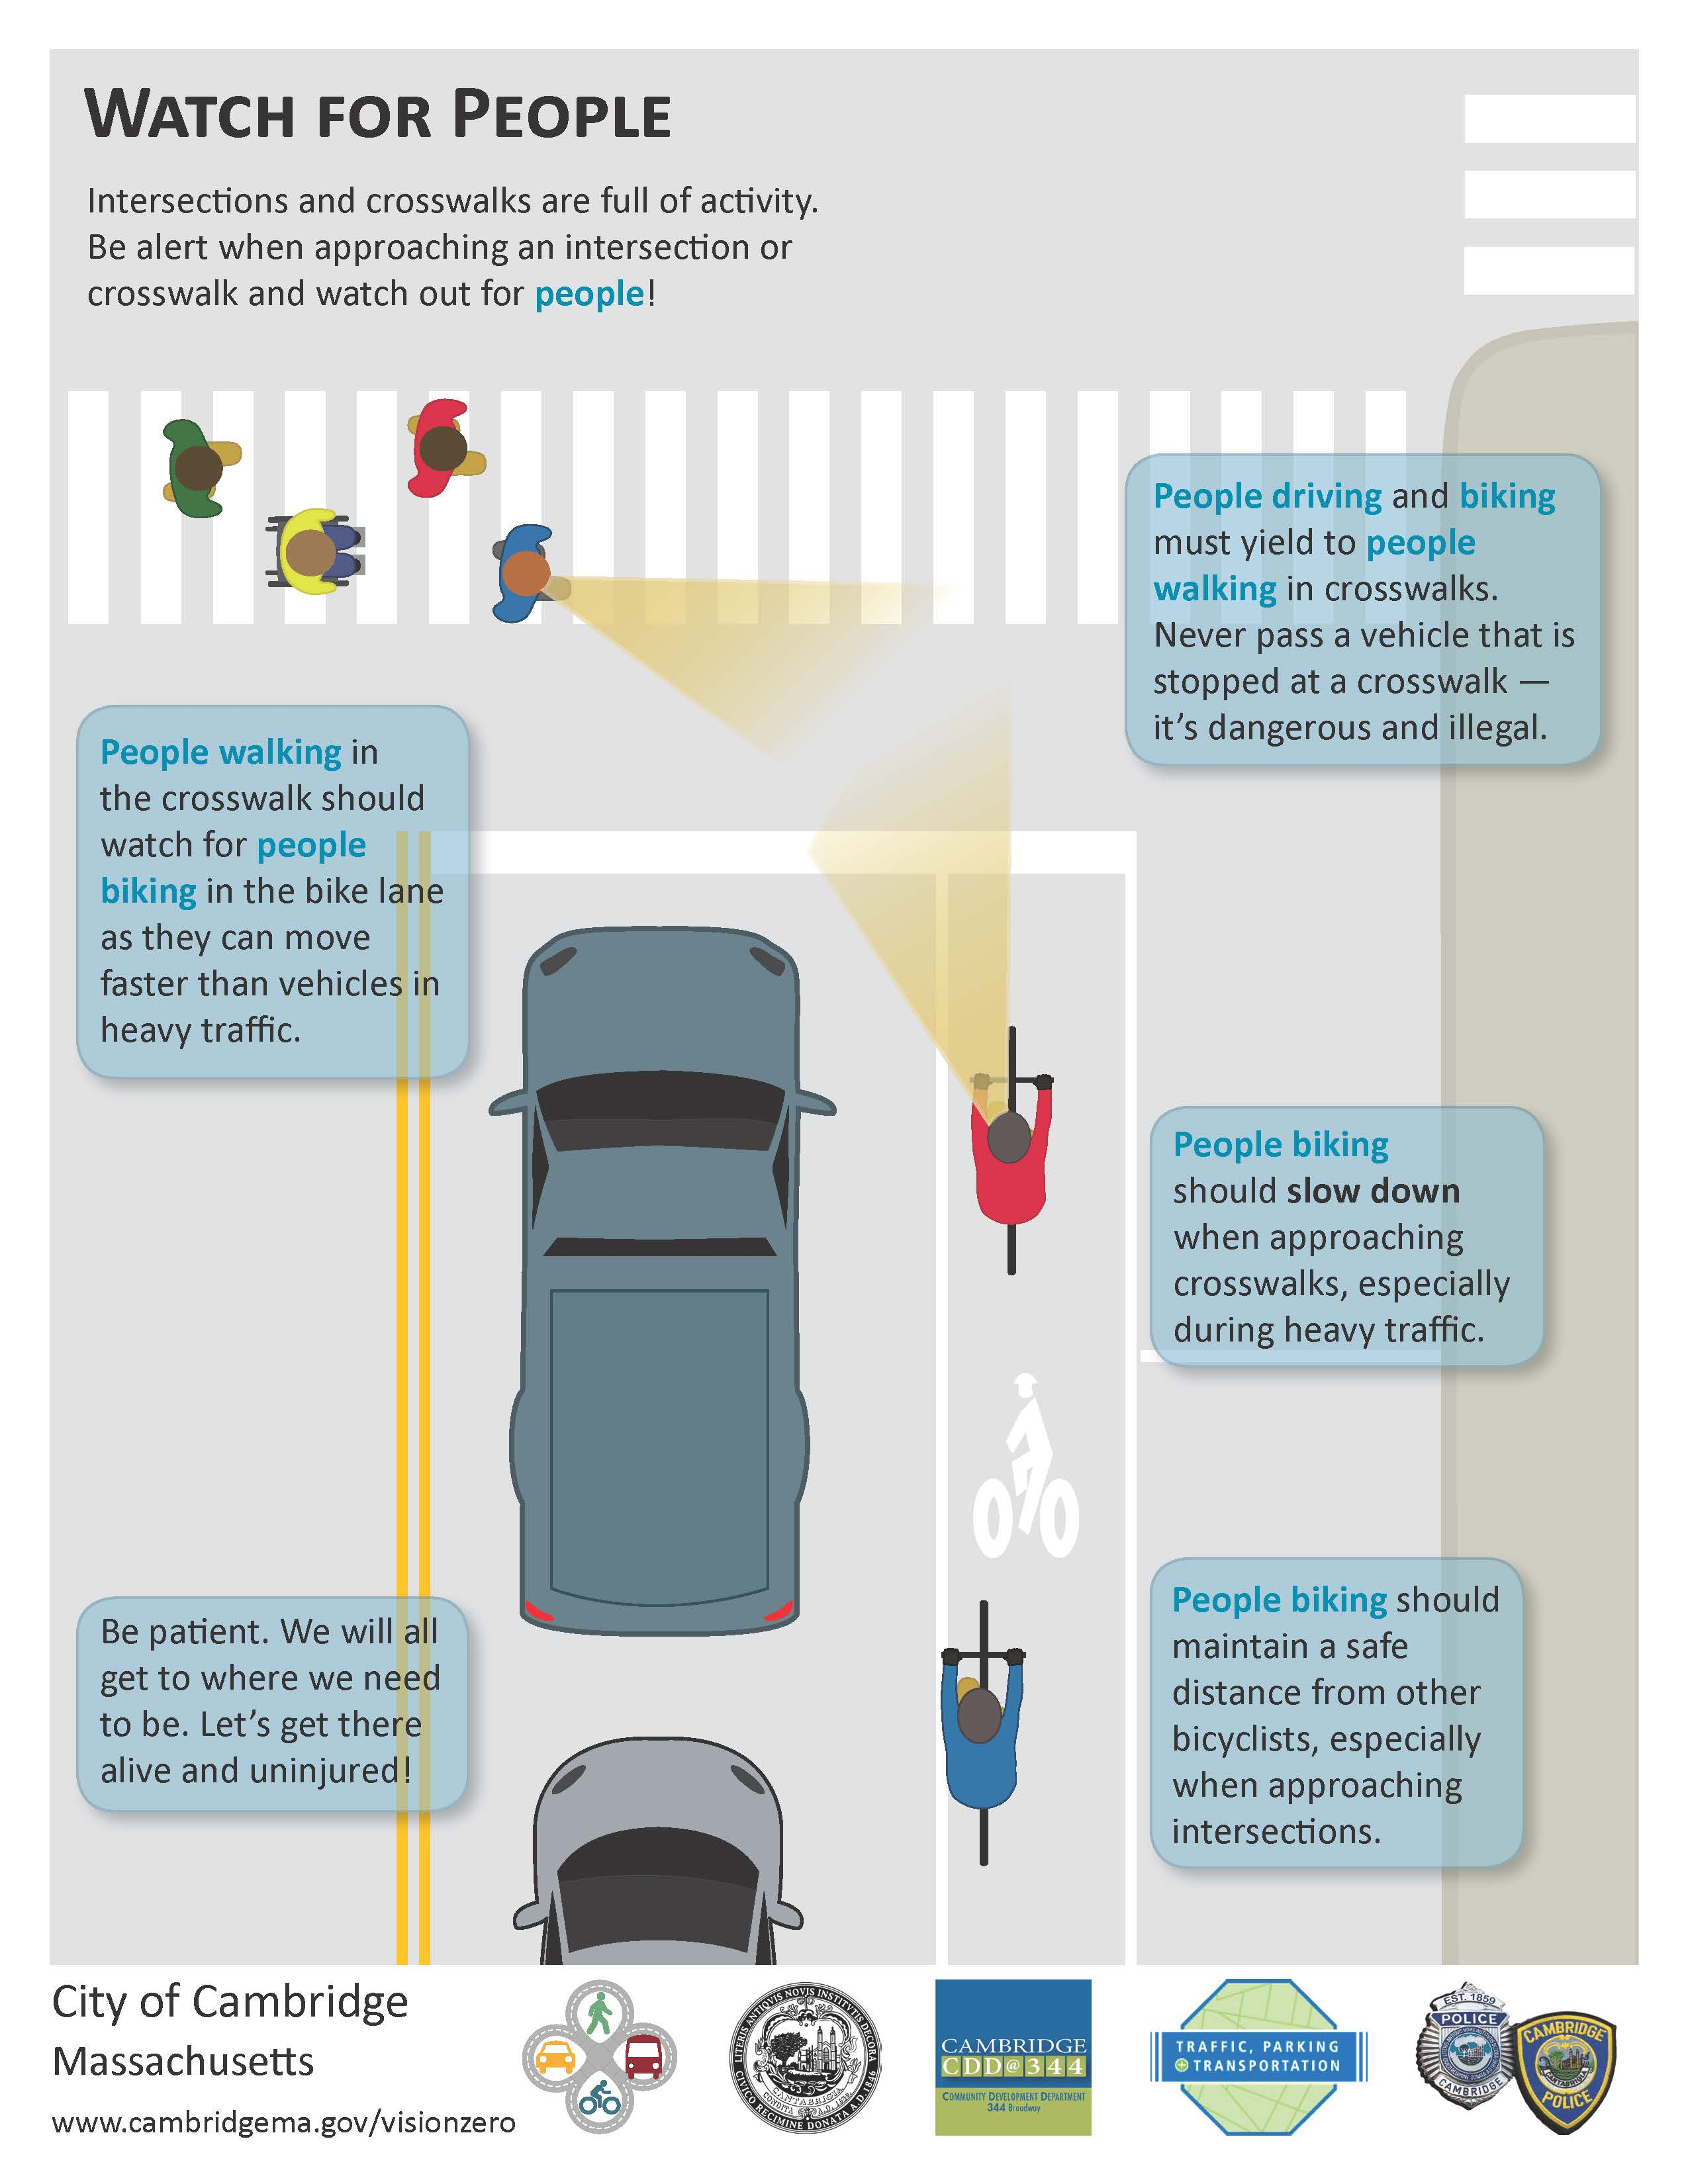 Image showing how to watch for people when driving in Cambridge